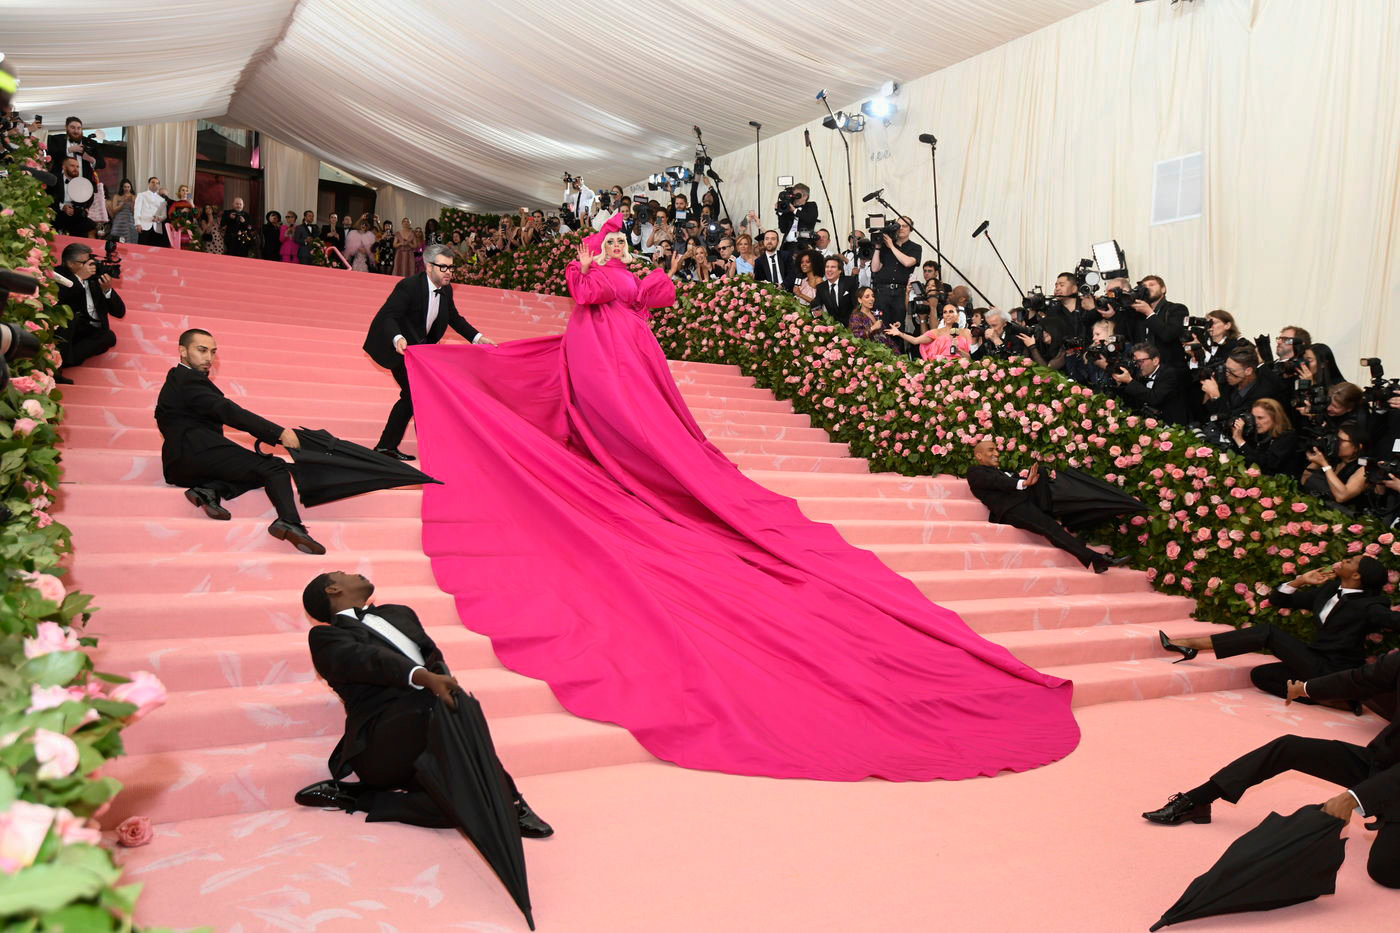 Lady Gaga's giant pink cape gown